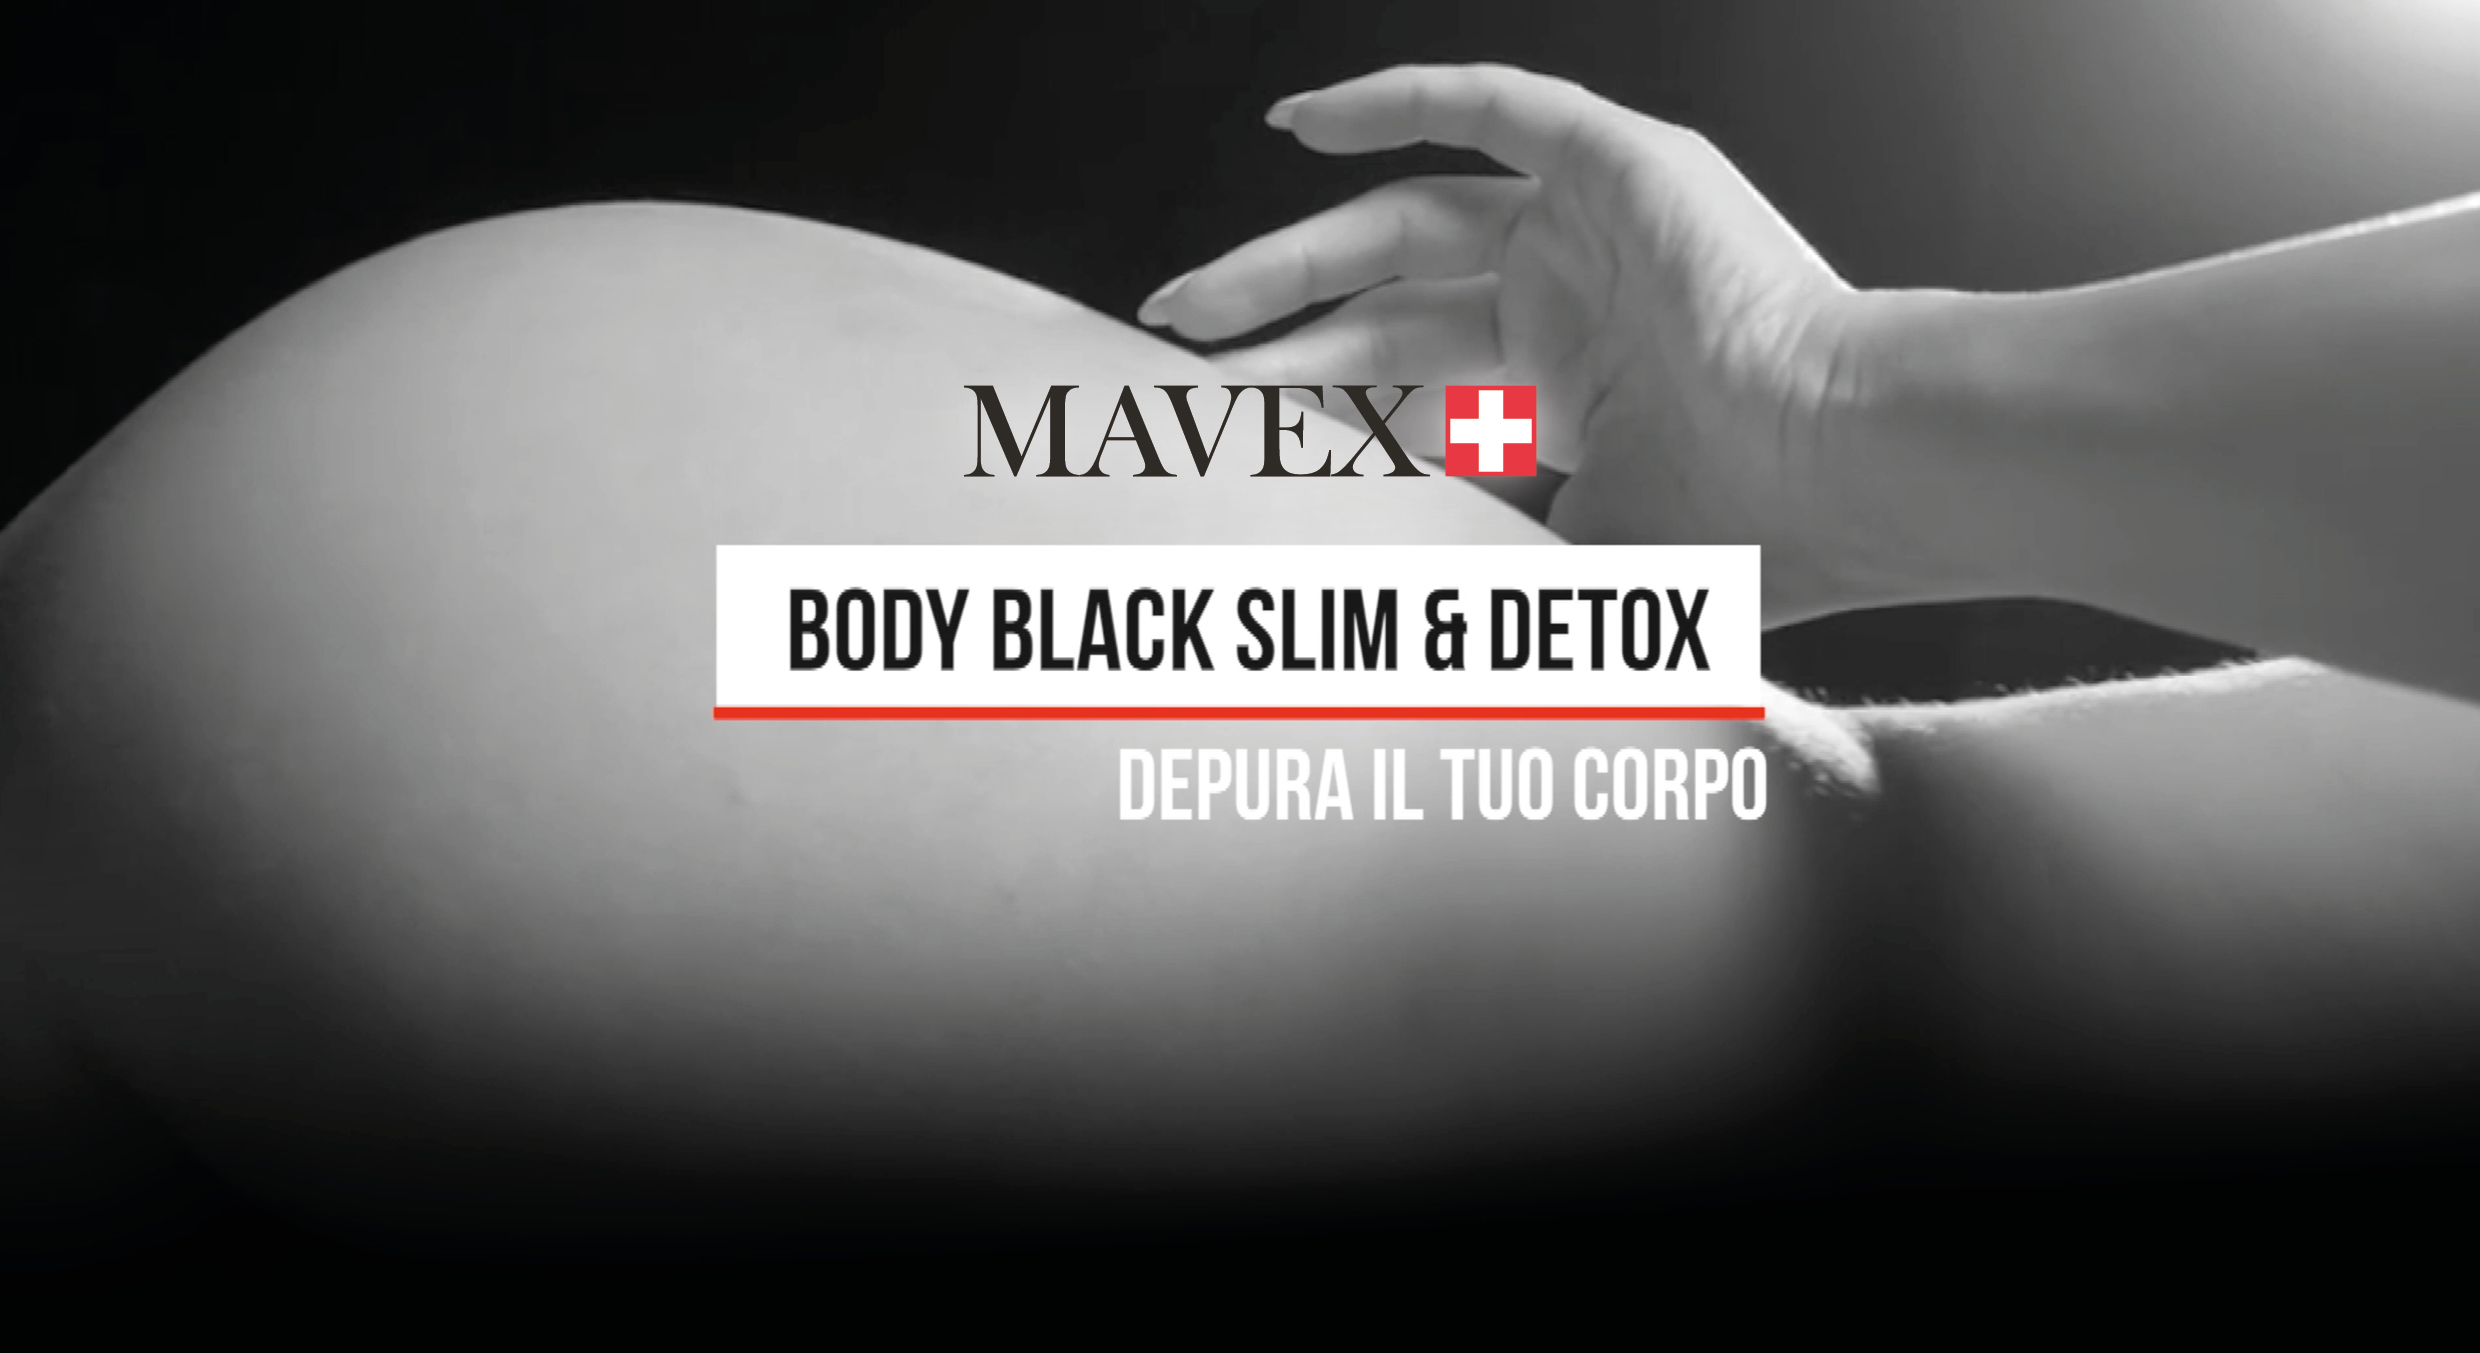 Body Black Slim & Detox